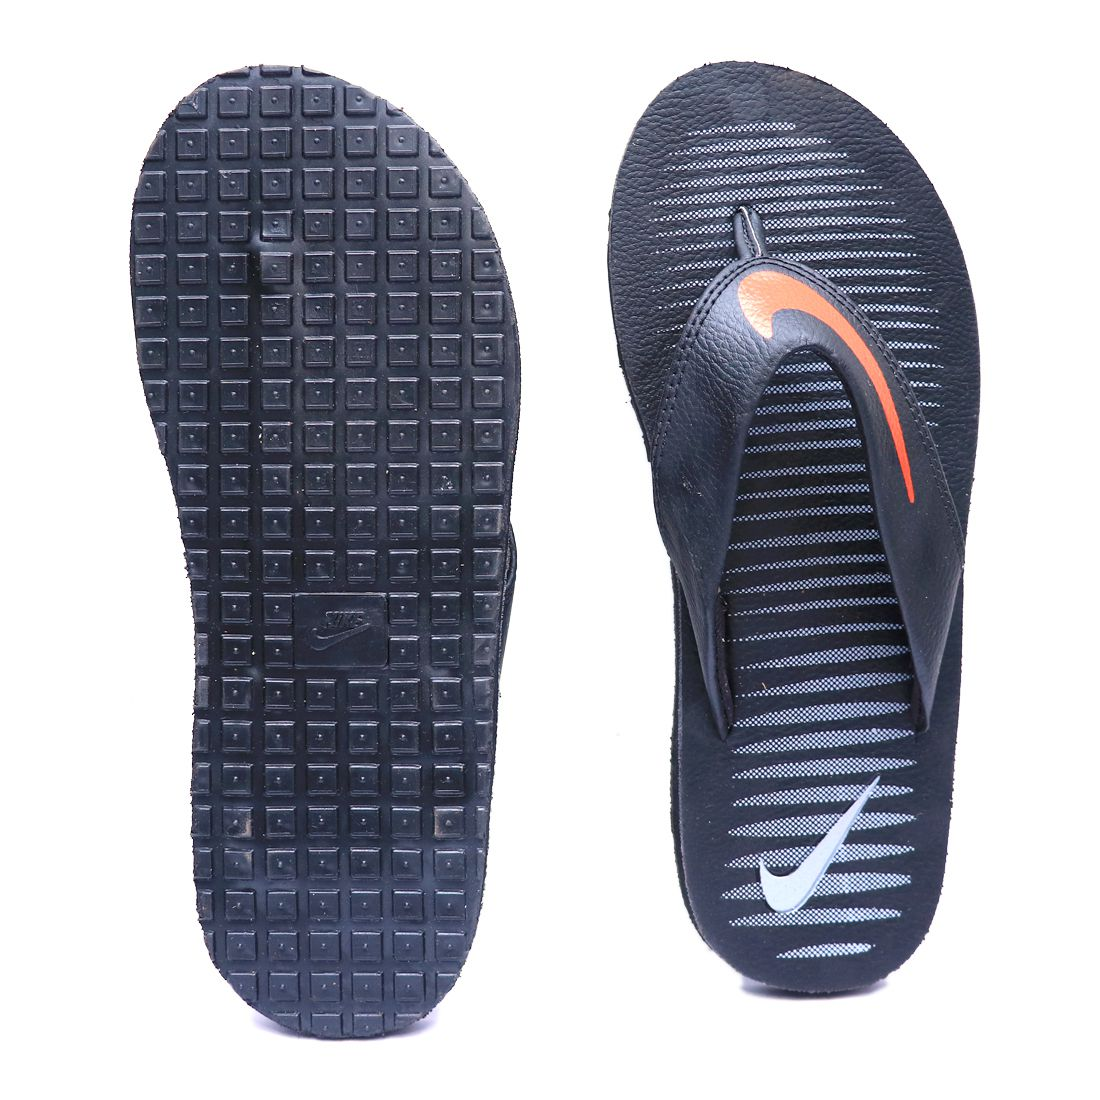 promo code 3a37f 569f0 Nike CHROMA THONG 5 black Red Thong Flip Flop